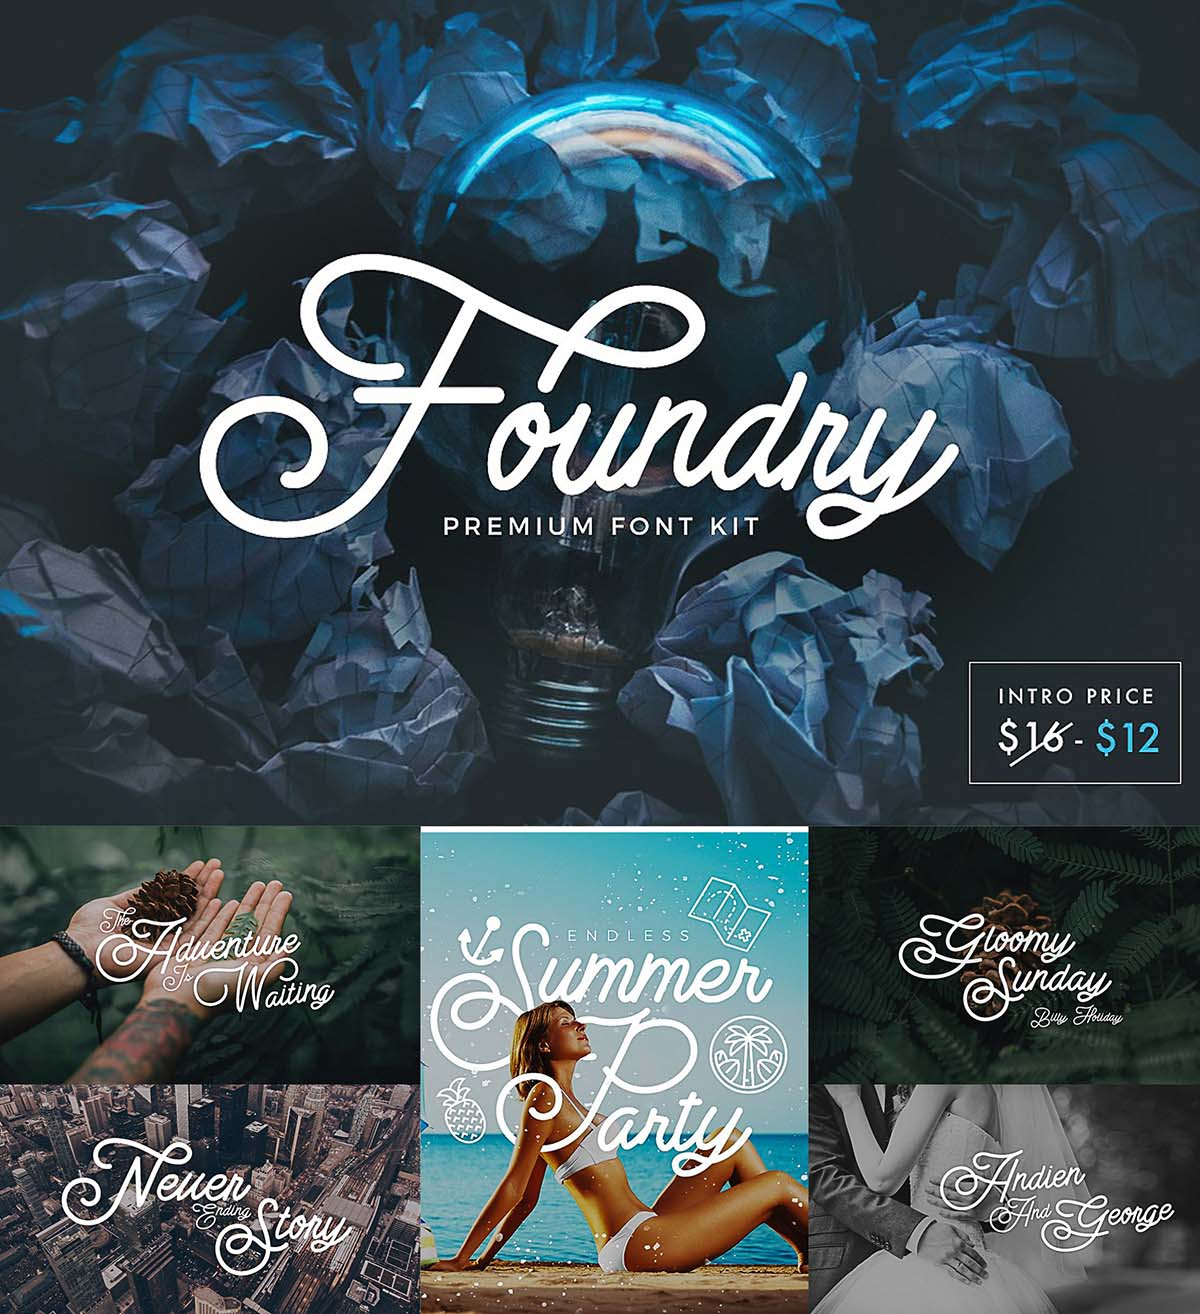 Foundry font